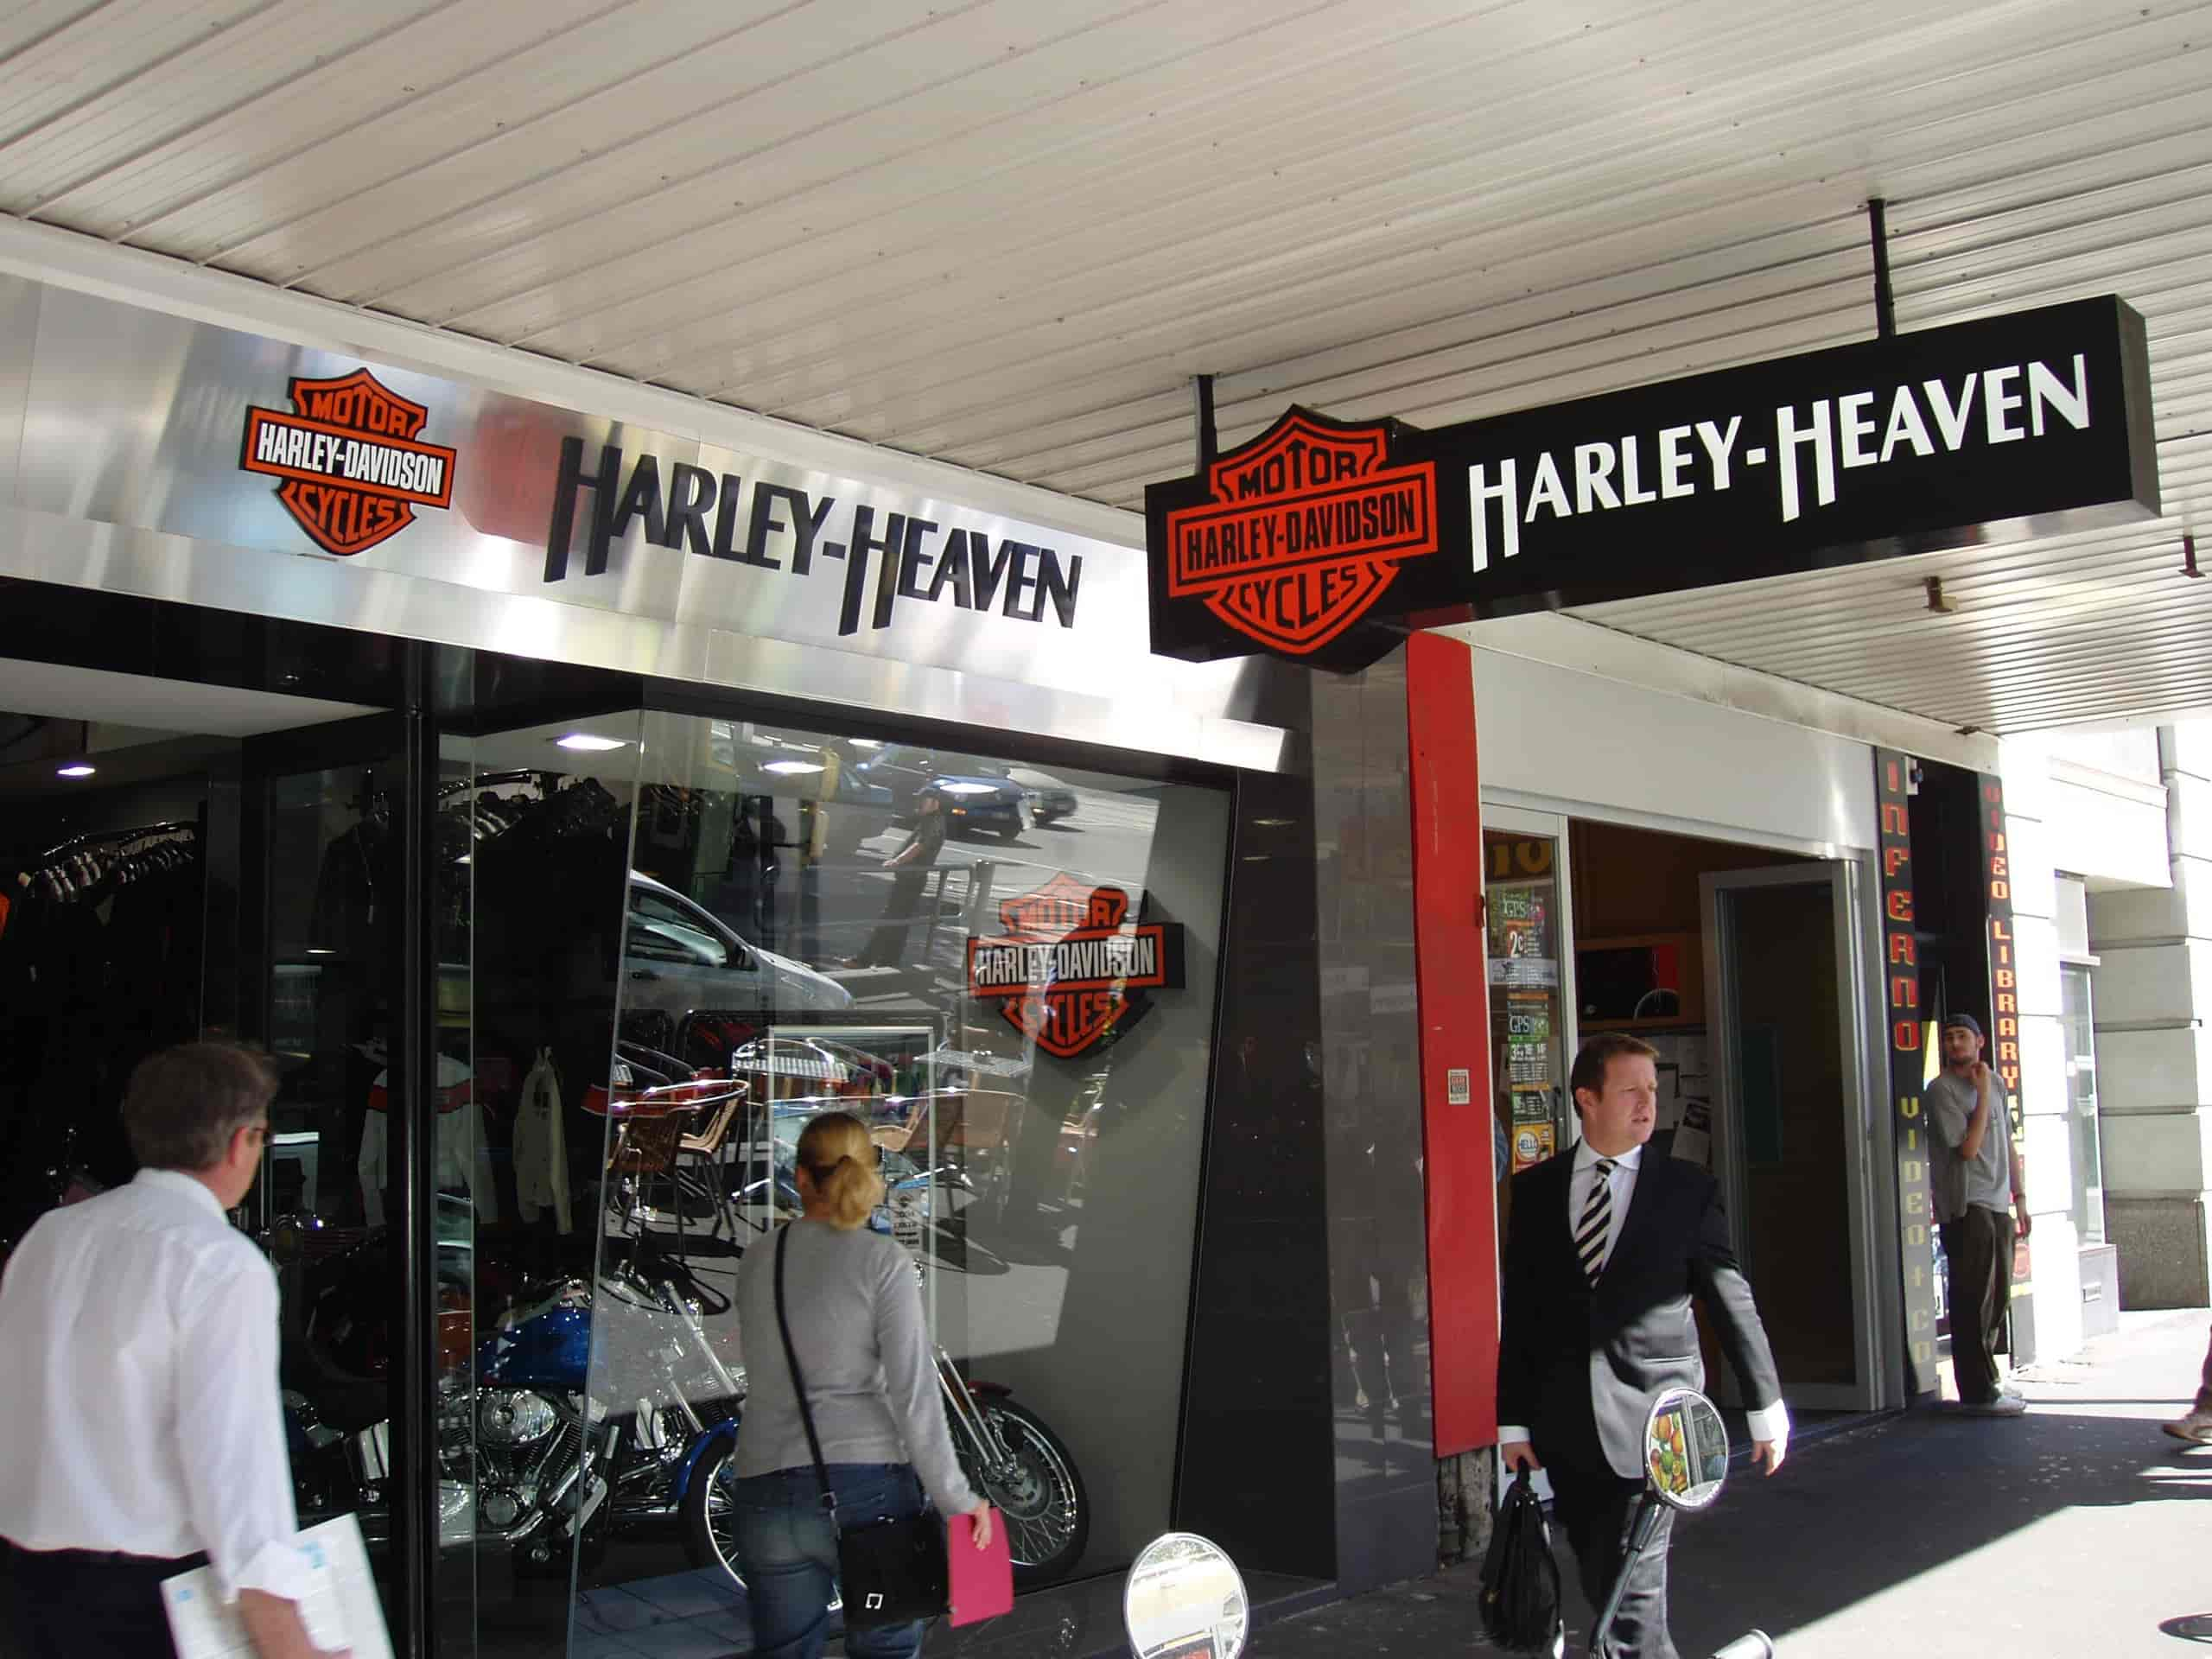 harley heaven shop front signs